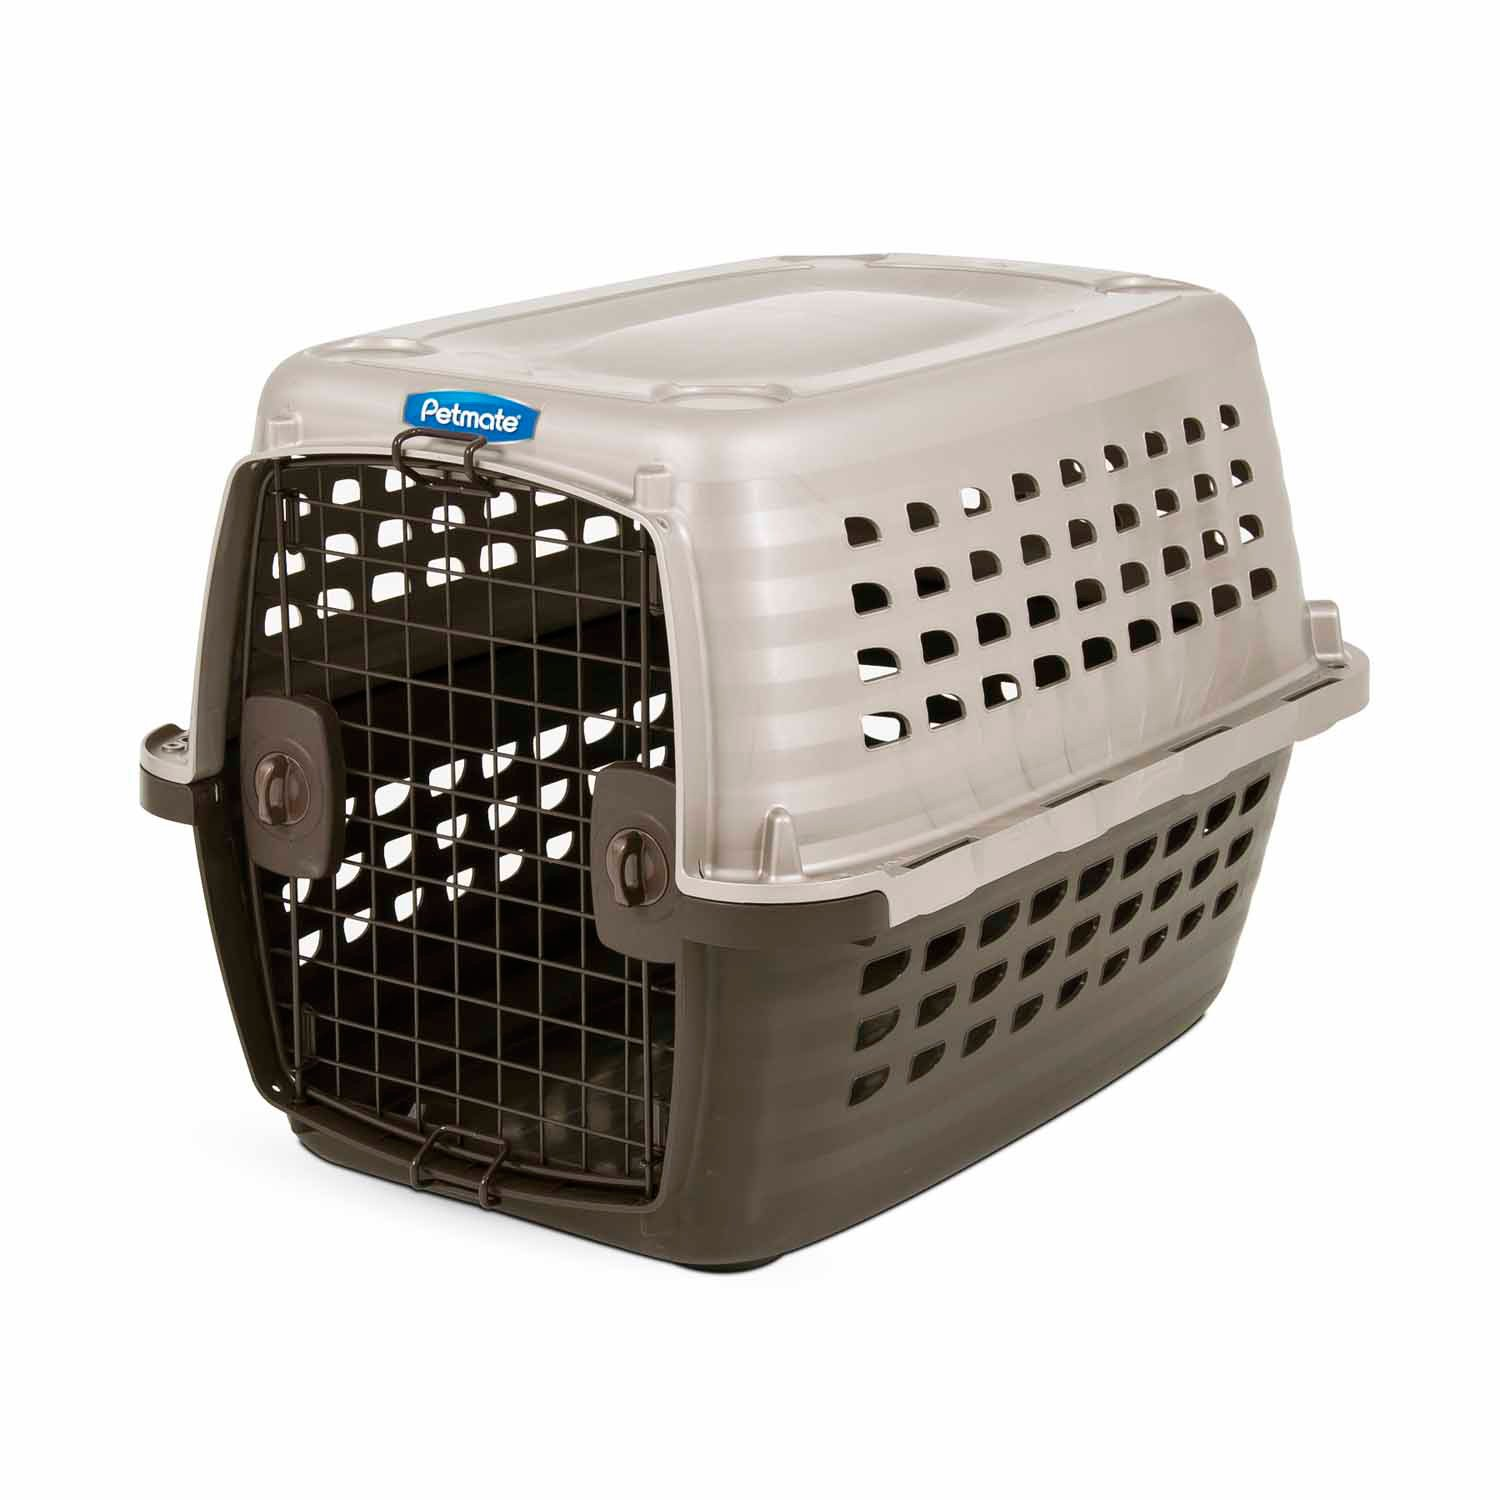 Petmate Navigator Pet Kennel 28 L X 20 W X 19.2 H Small Tan  Brown